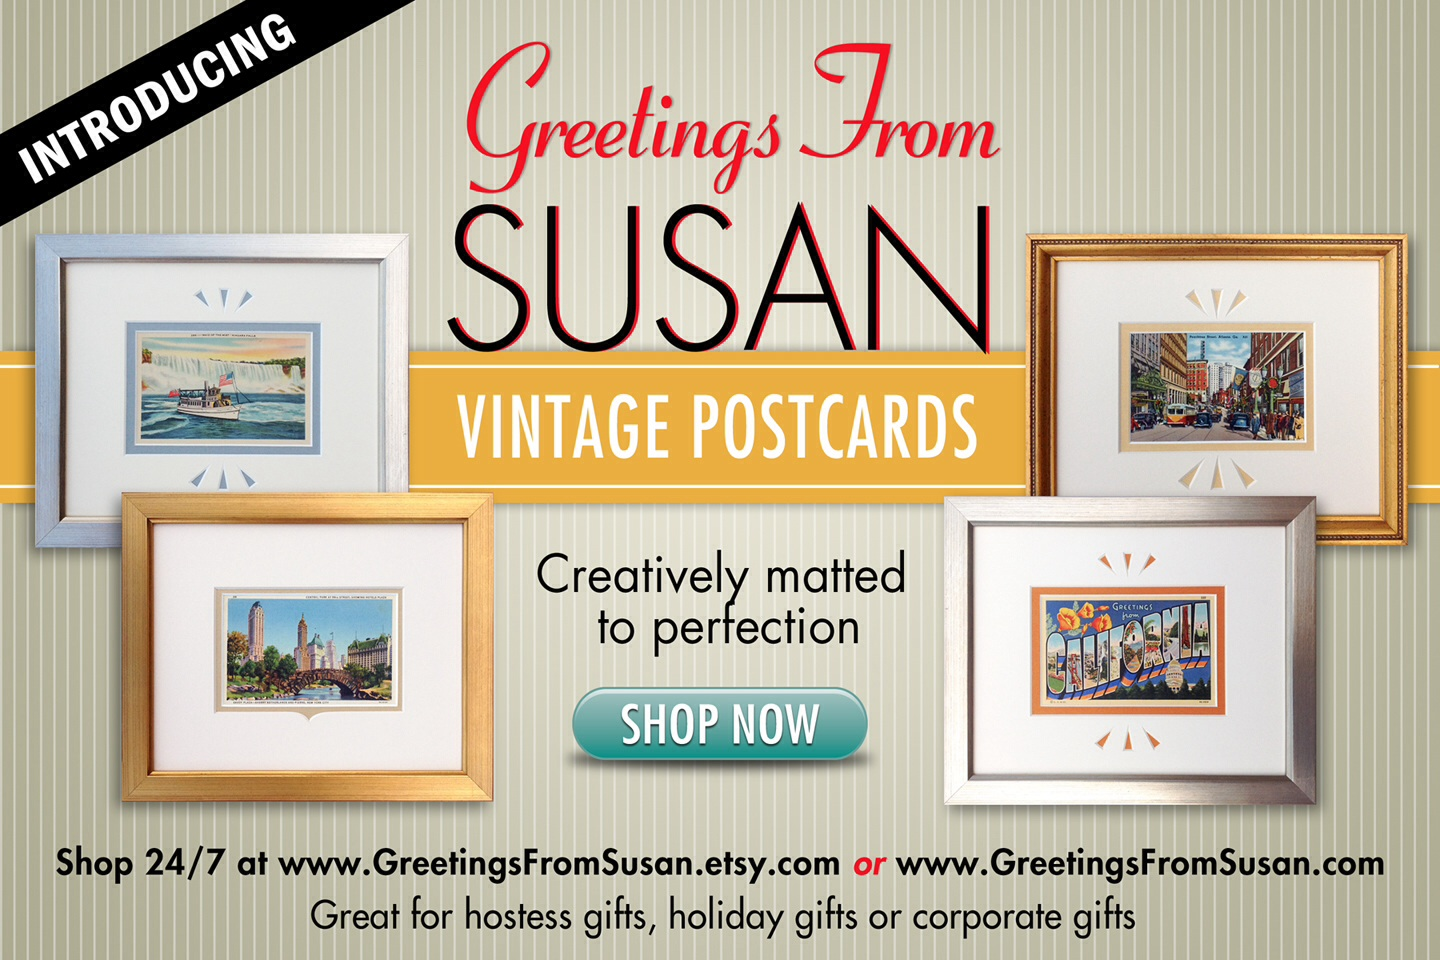 Vintage Postcard Shopping Website